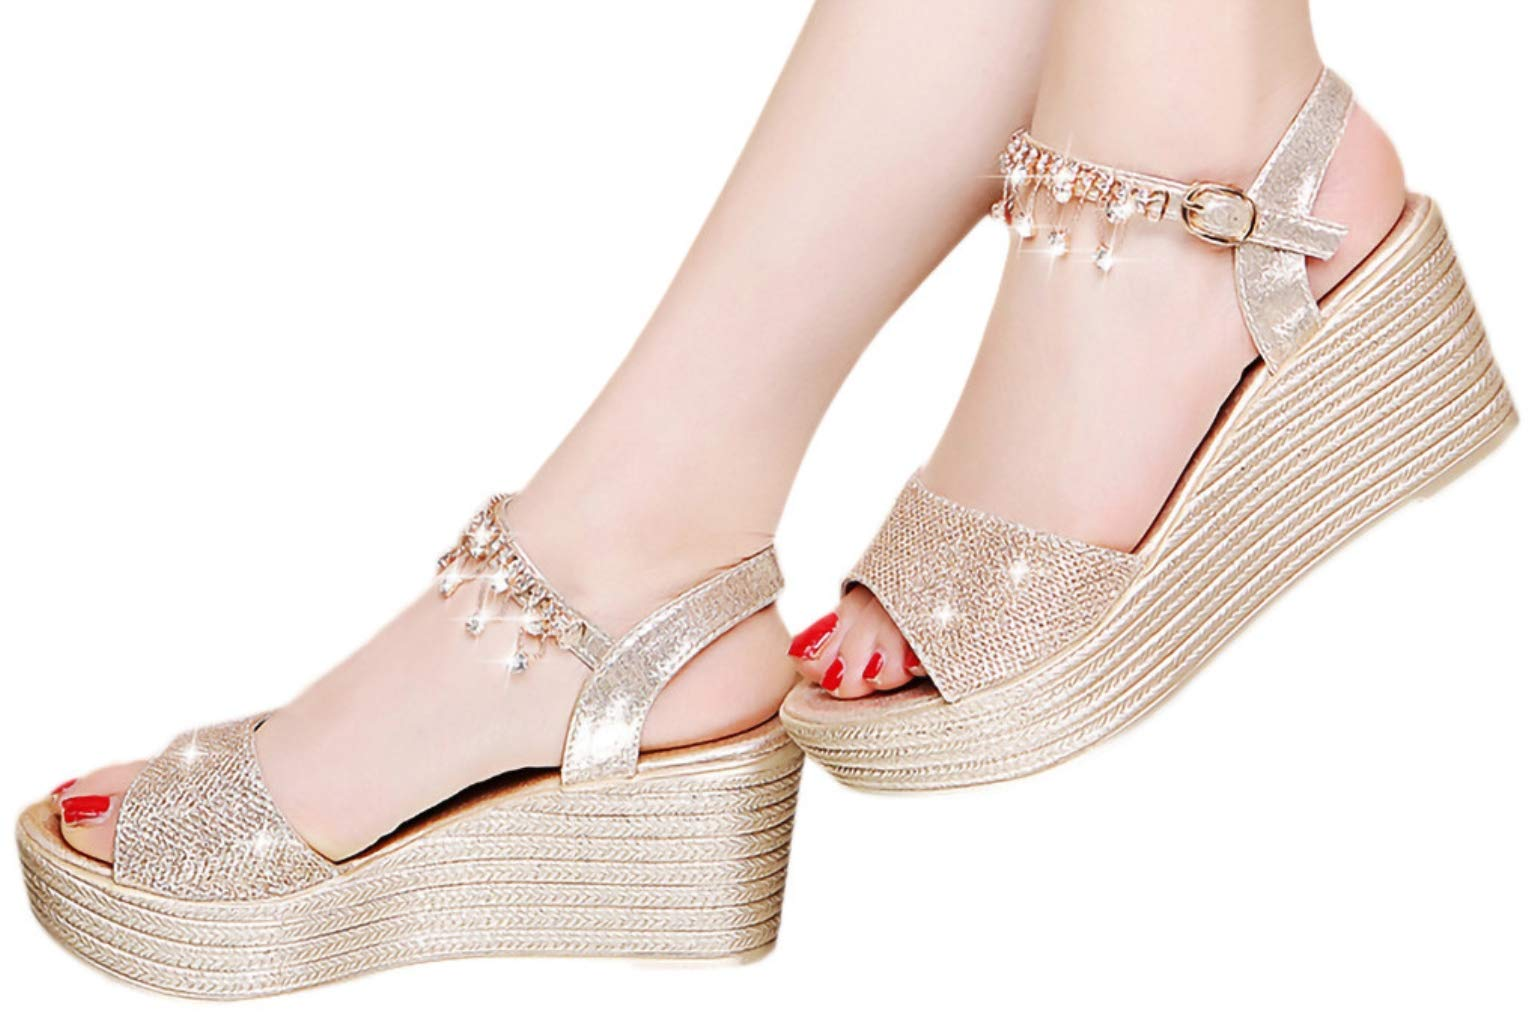 Hemlock Women Fashion Sequin Wedge Sandals Pear Belt Buckle Sandals Thick Platform Sandals Party Princess Sandals Shoes Gold